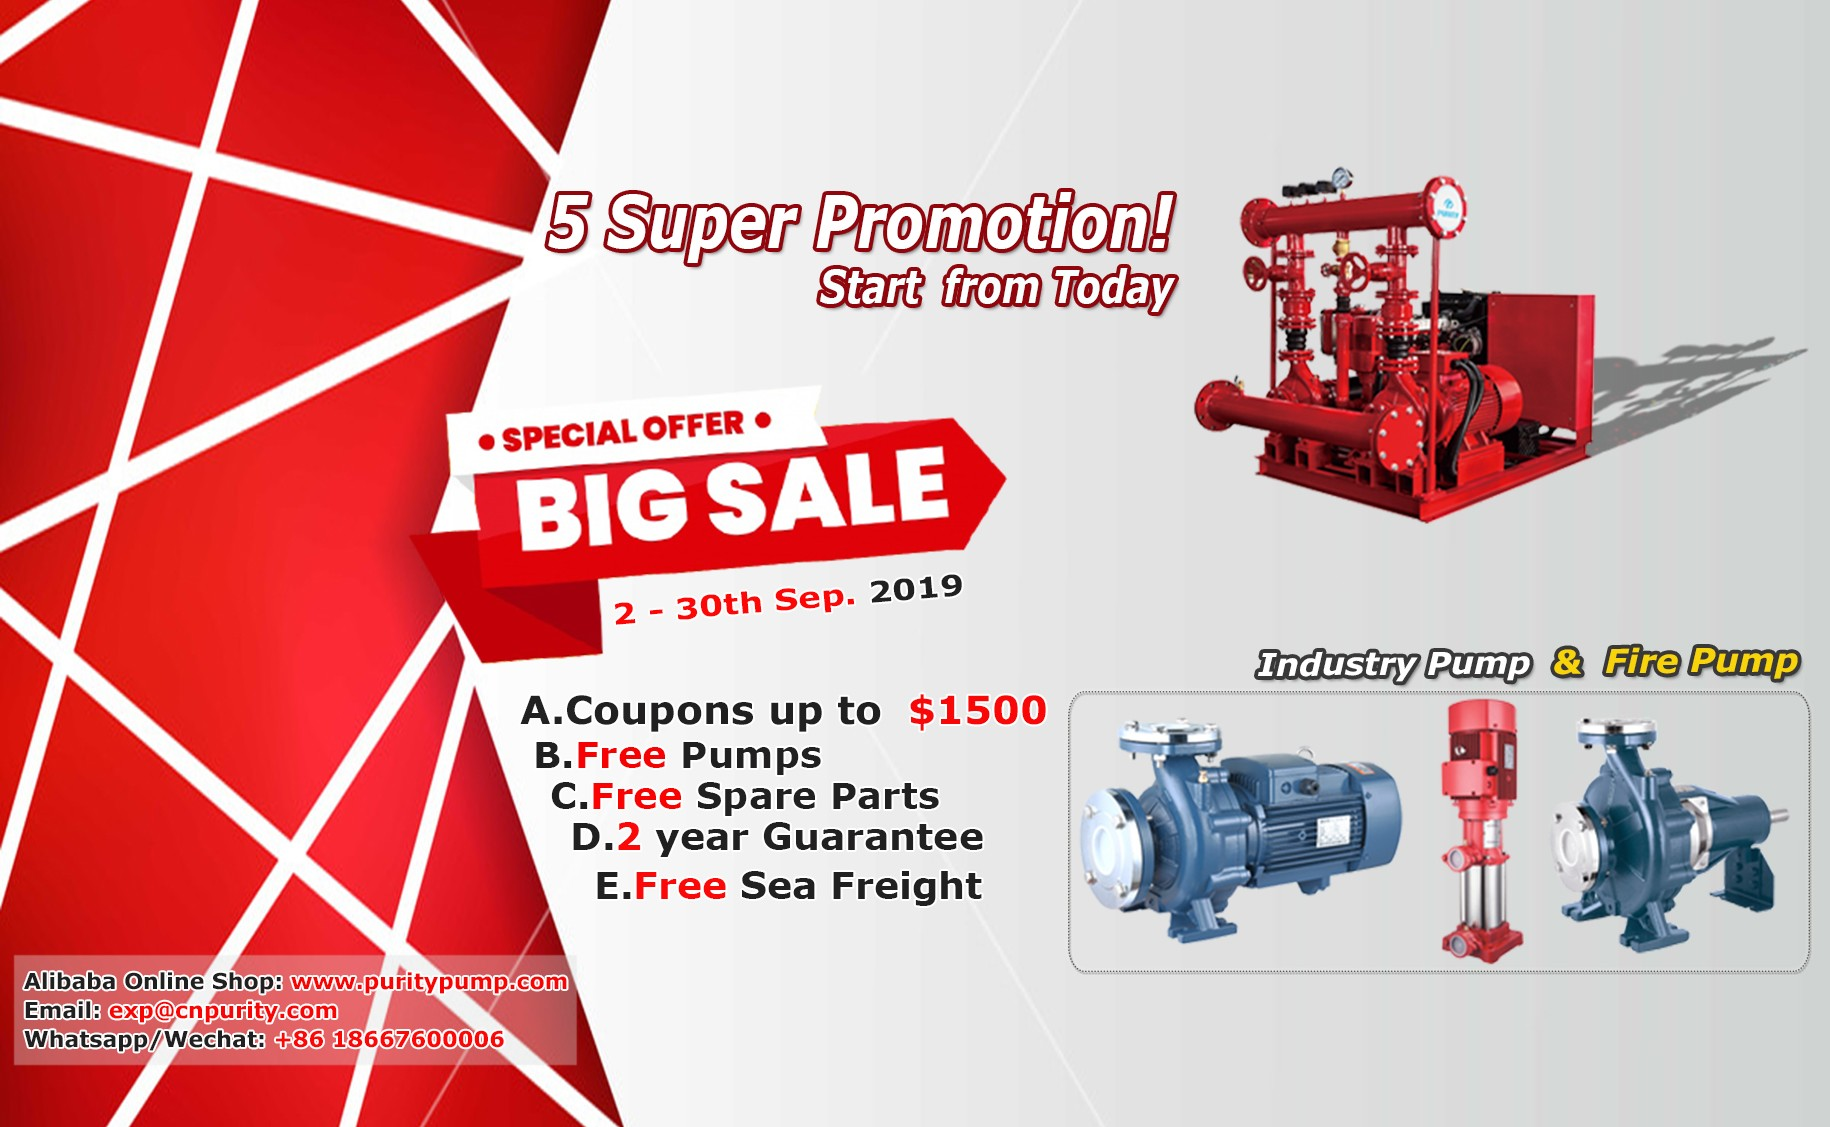 5 Super Promotion Start From Today!